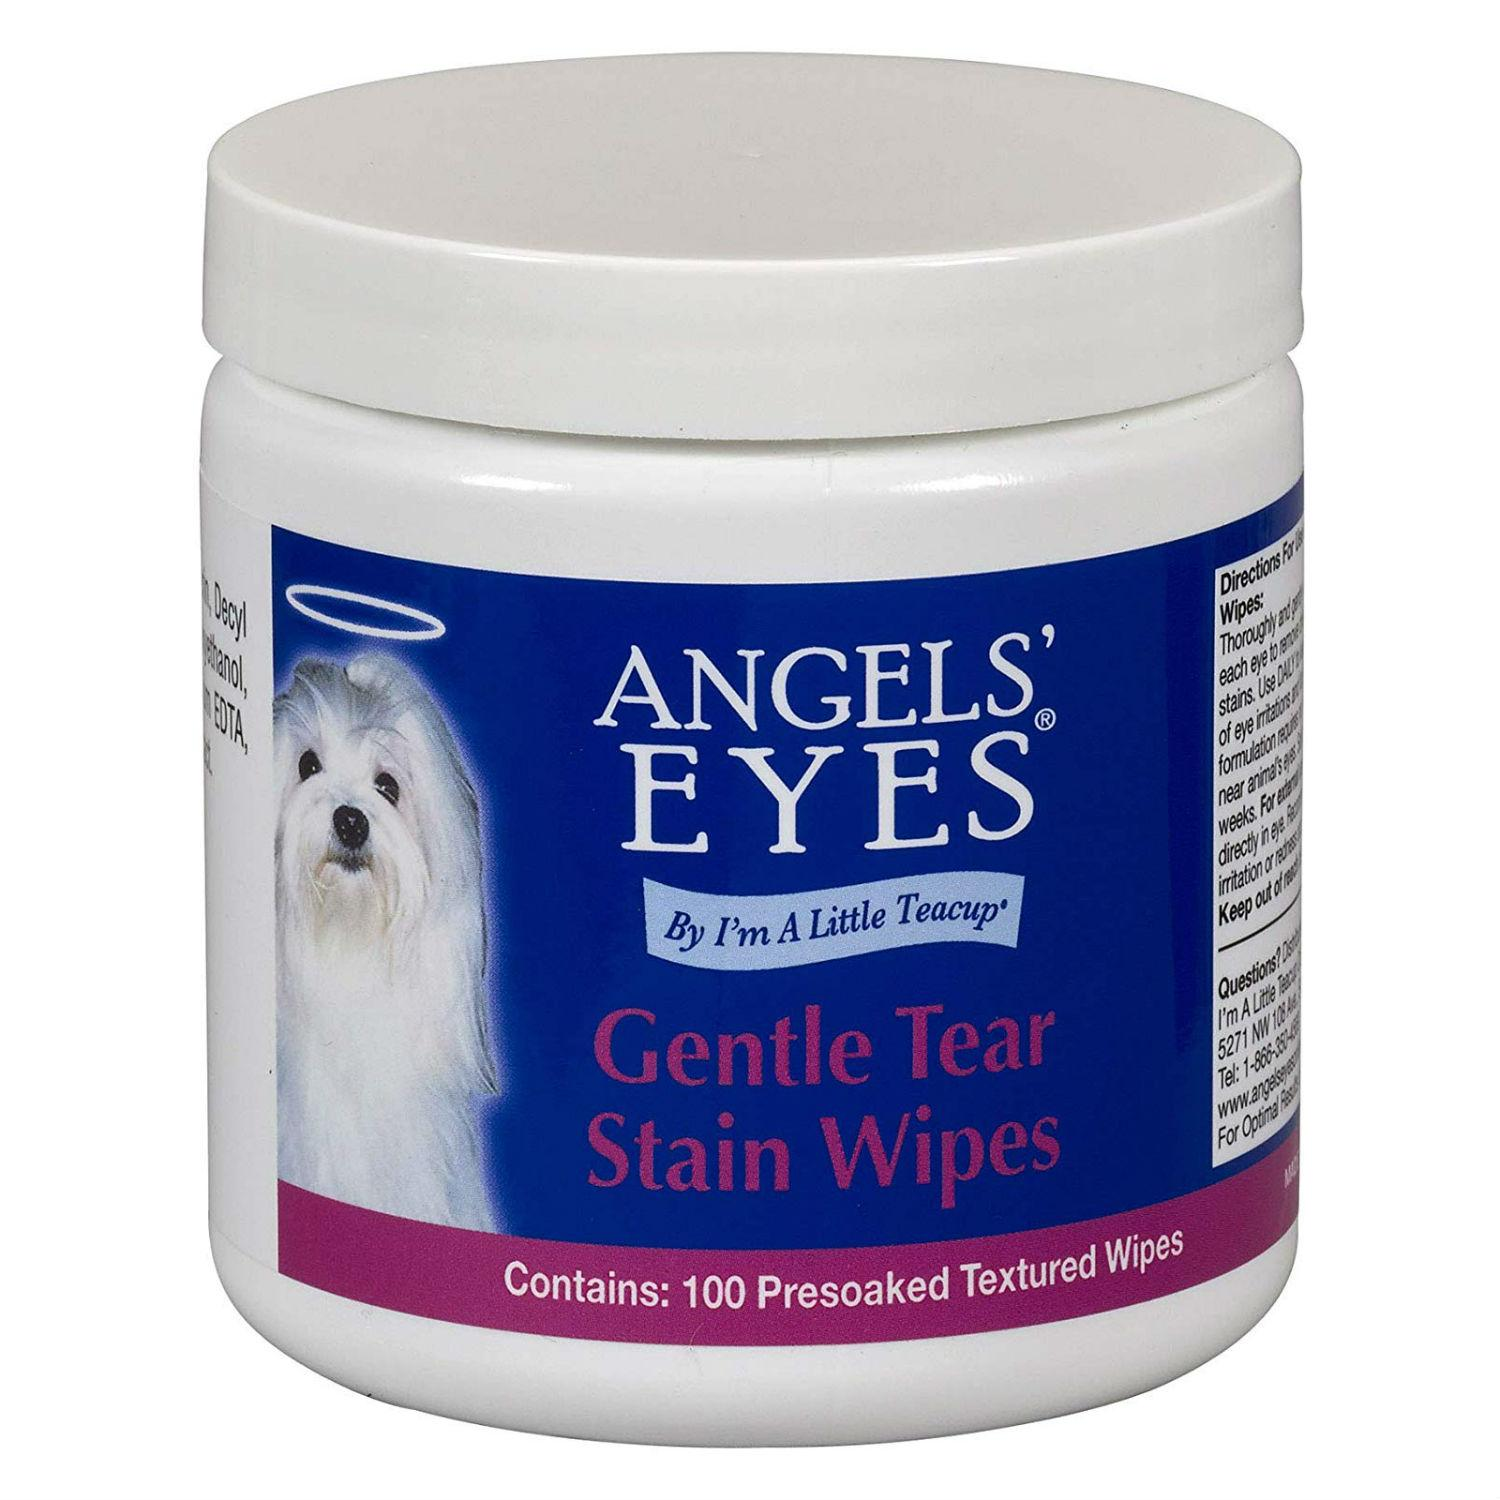 Angels' Eyes Gentle Dog Tear Stain Wipes